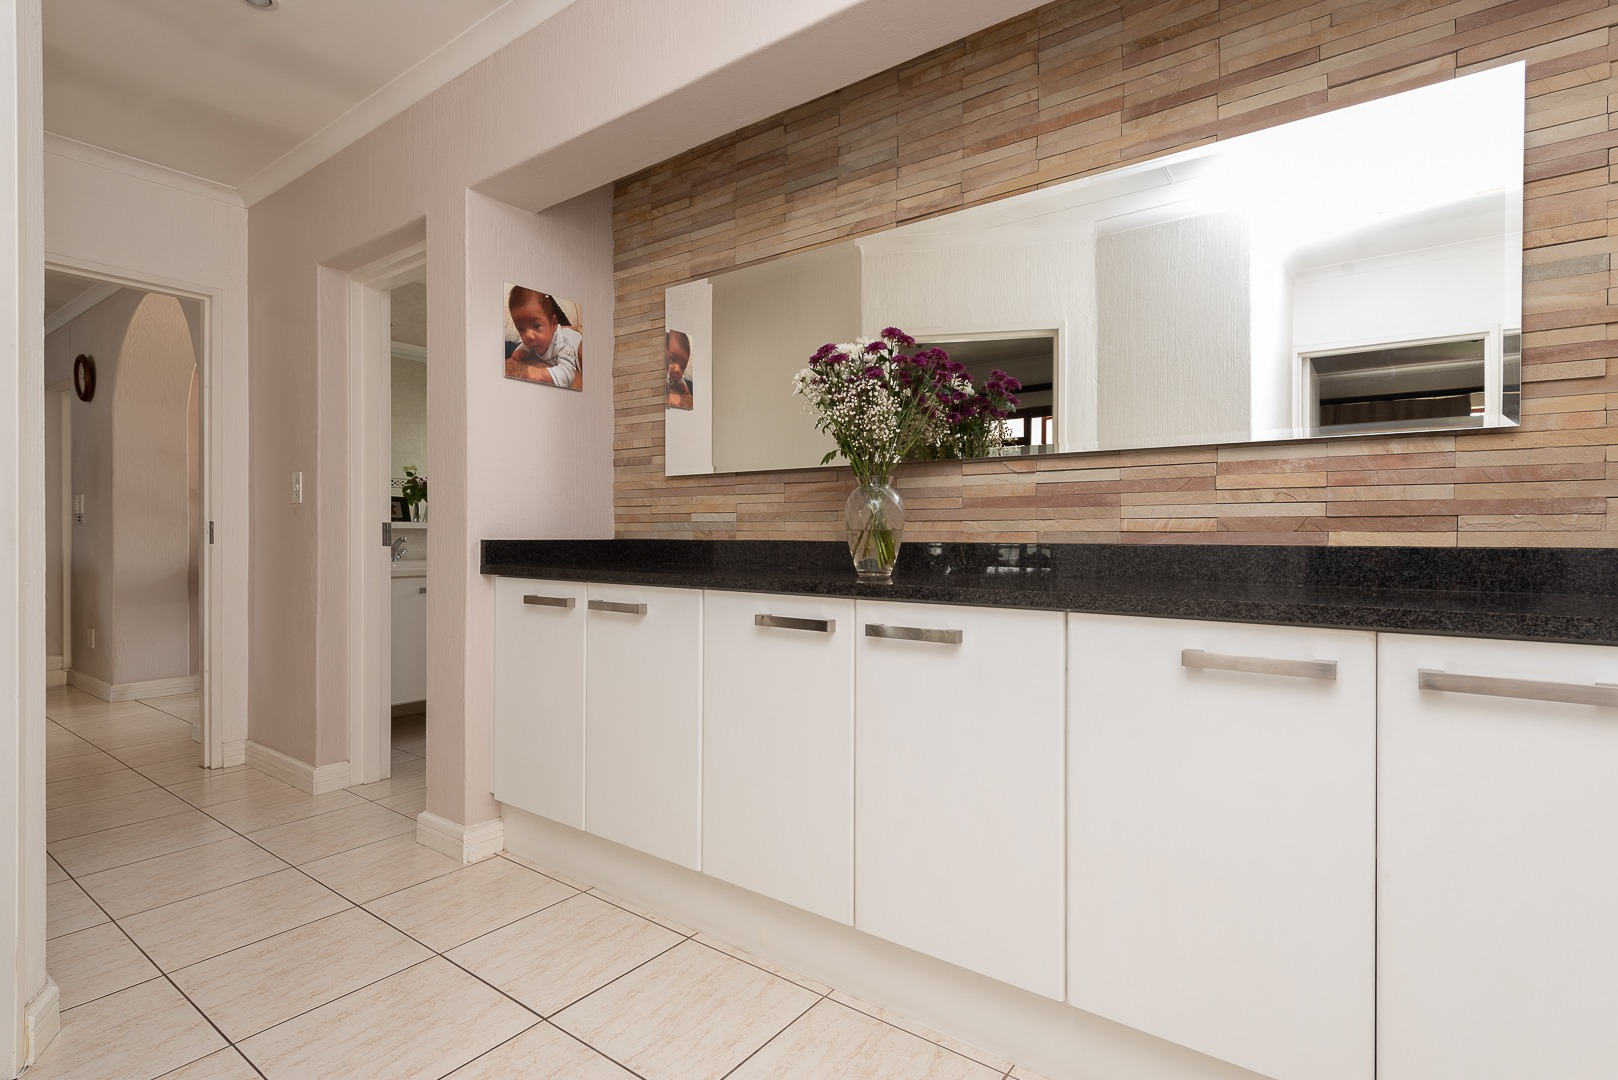 3 Bedroom House For Sale in Lonehill